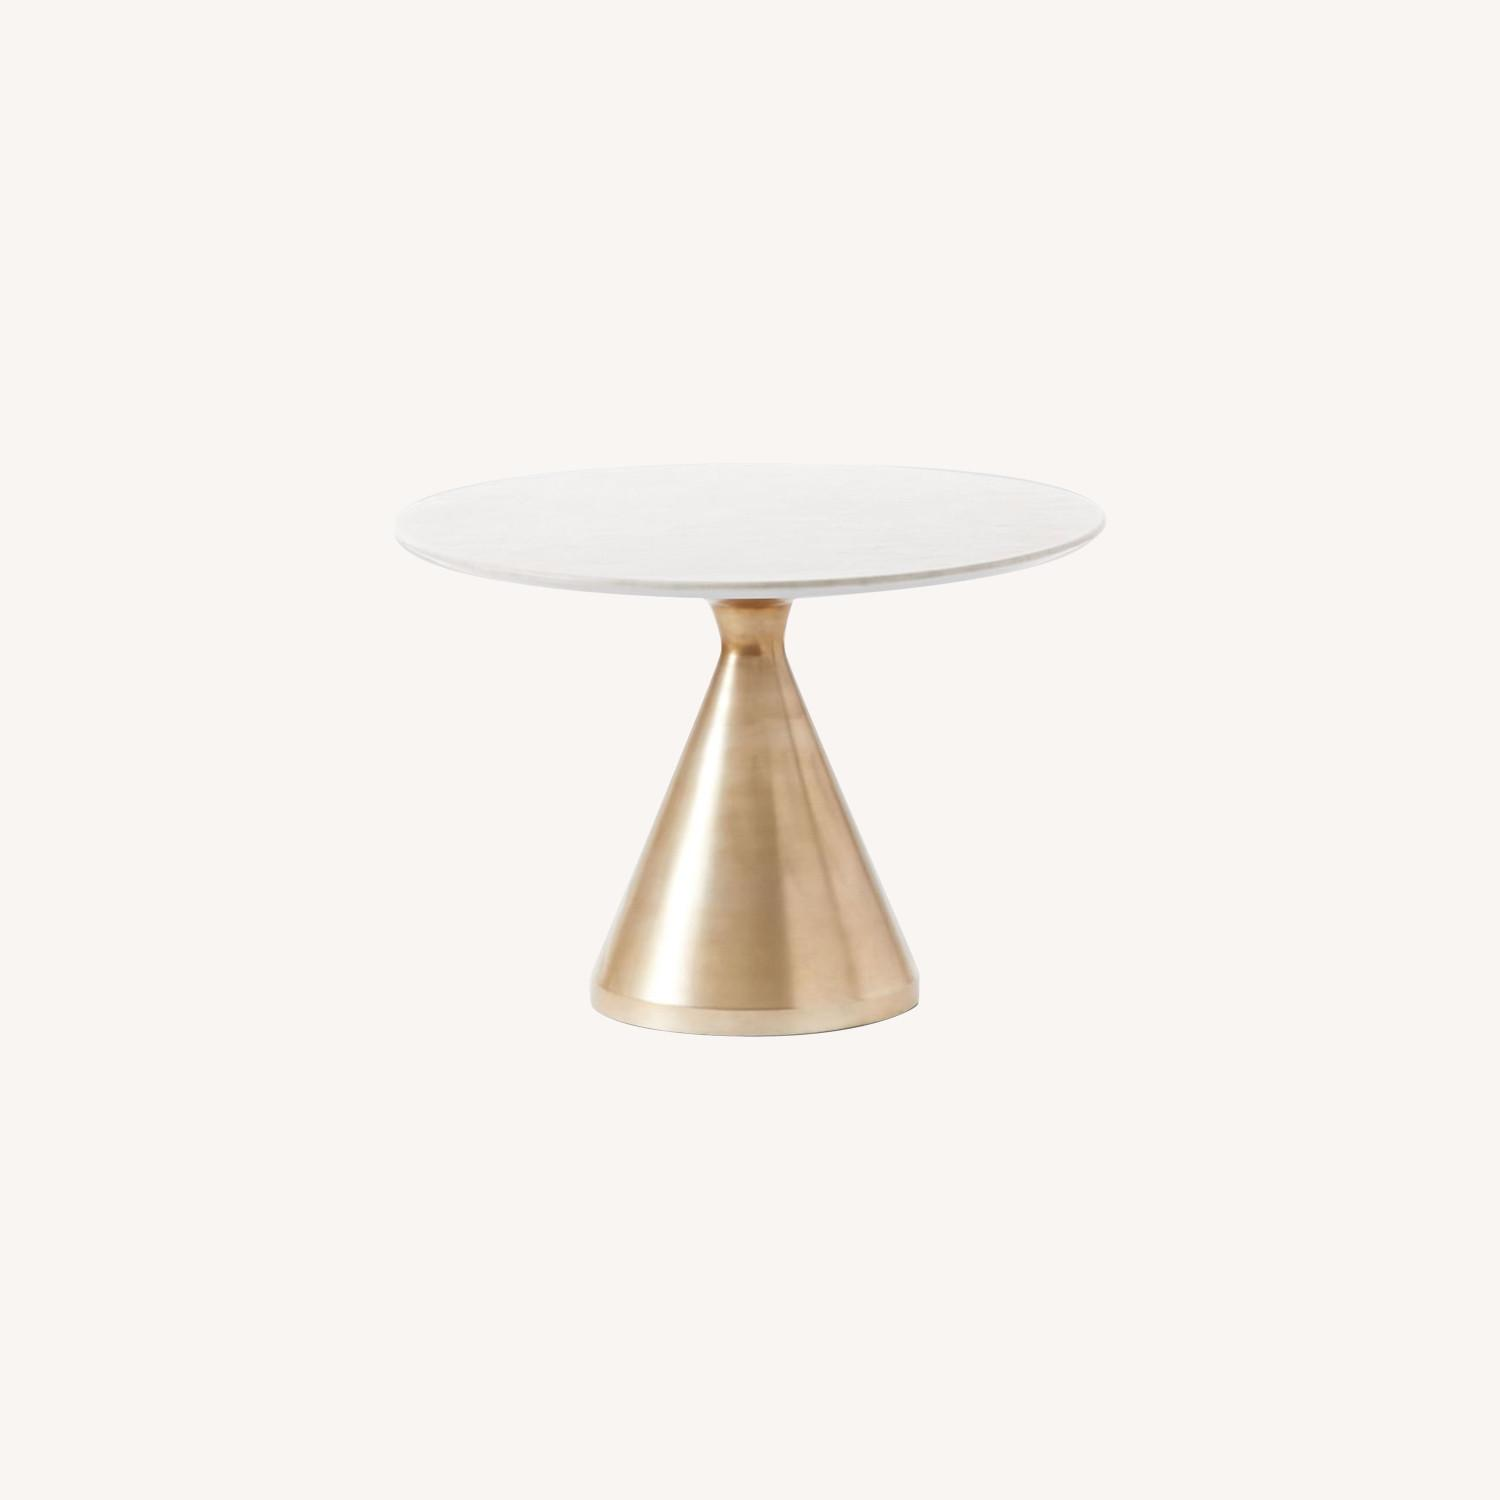 West Elm Silhouette Table Base - image-0